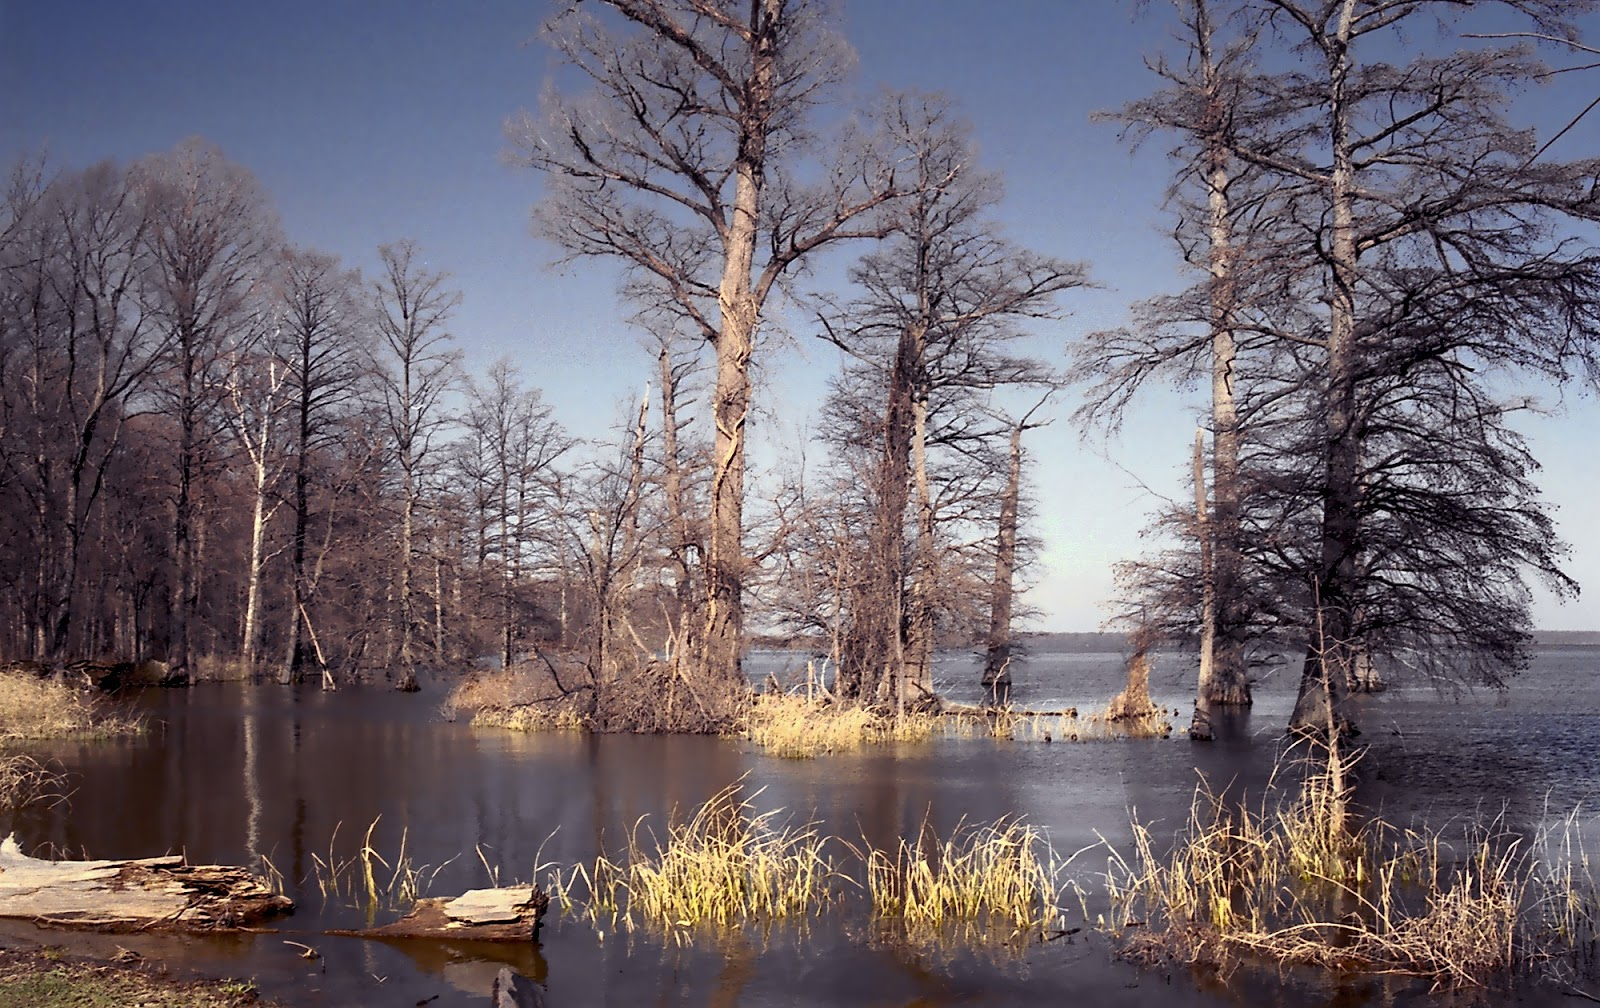 Reelfoot_Lake.jpg